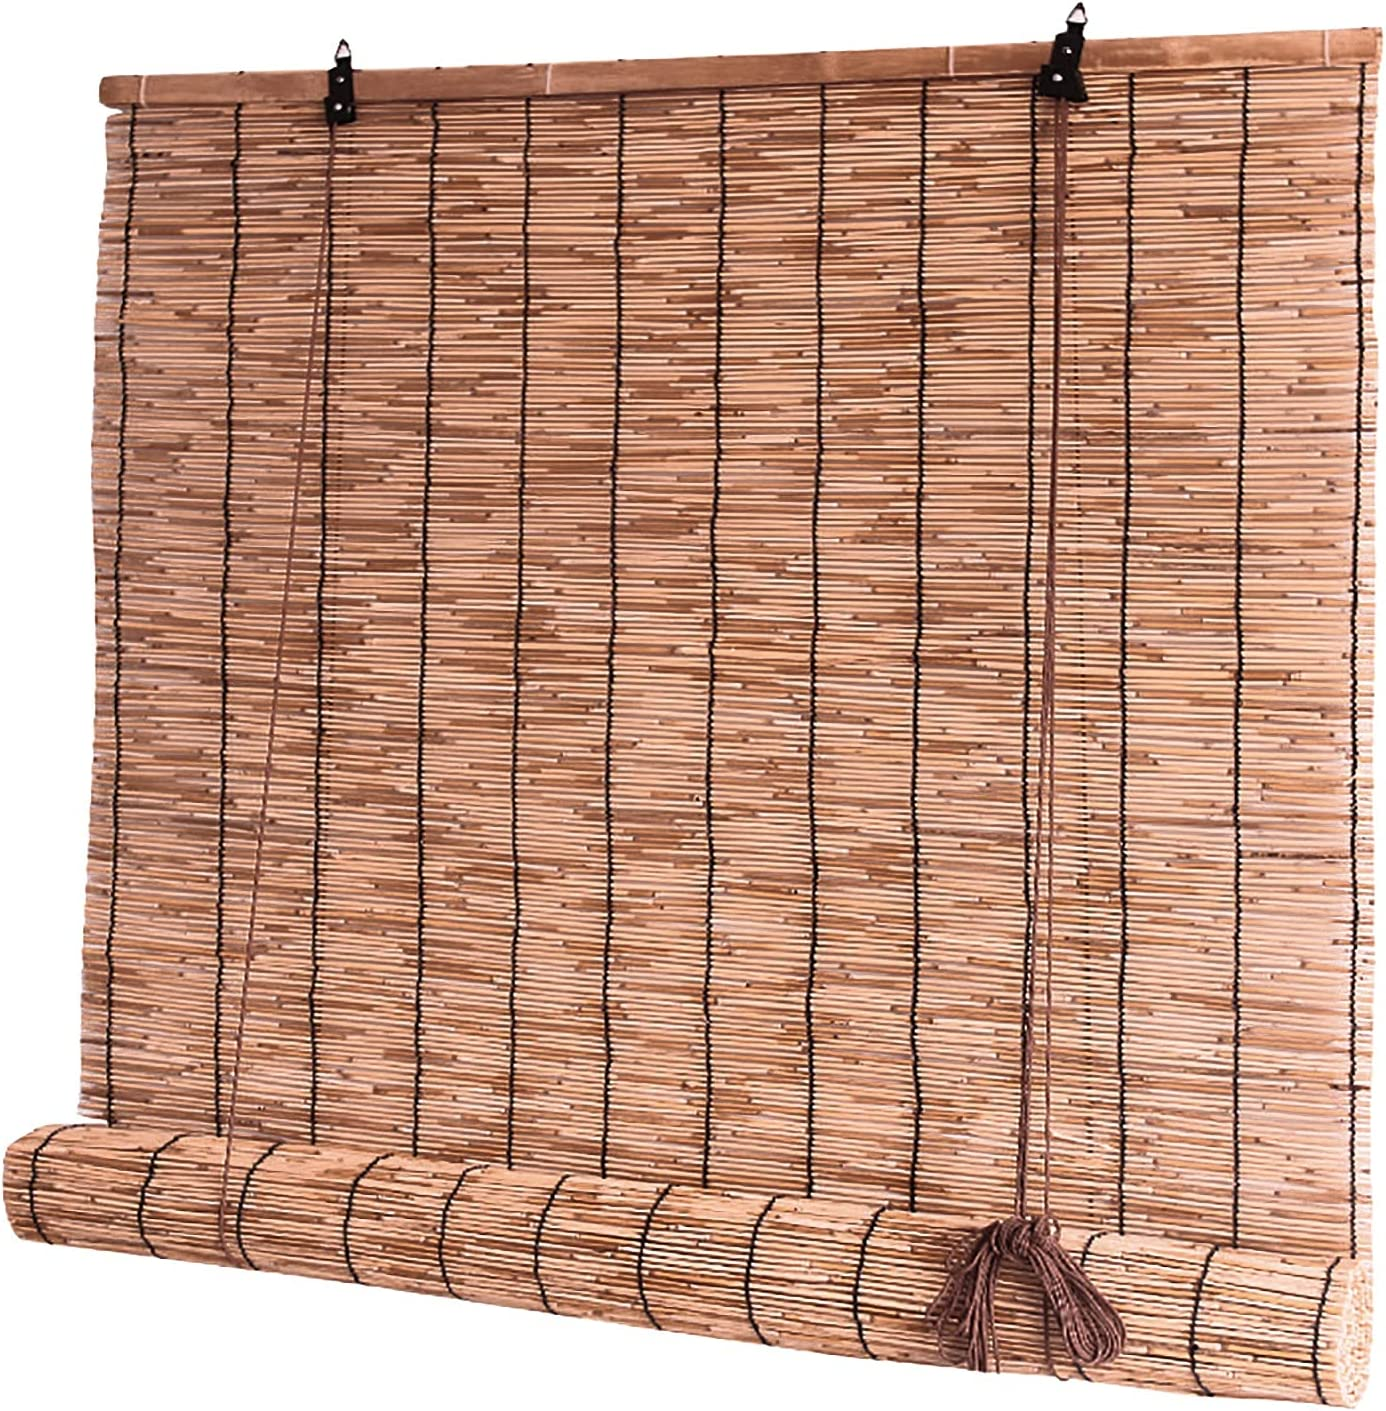 DBXOKK Natural Reed Don't miss the campaign Spring new work Curtain Outdoor Shade Roller Weatherp